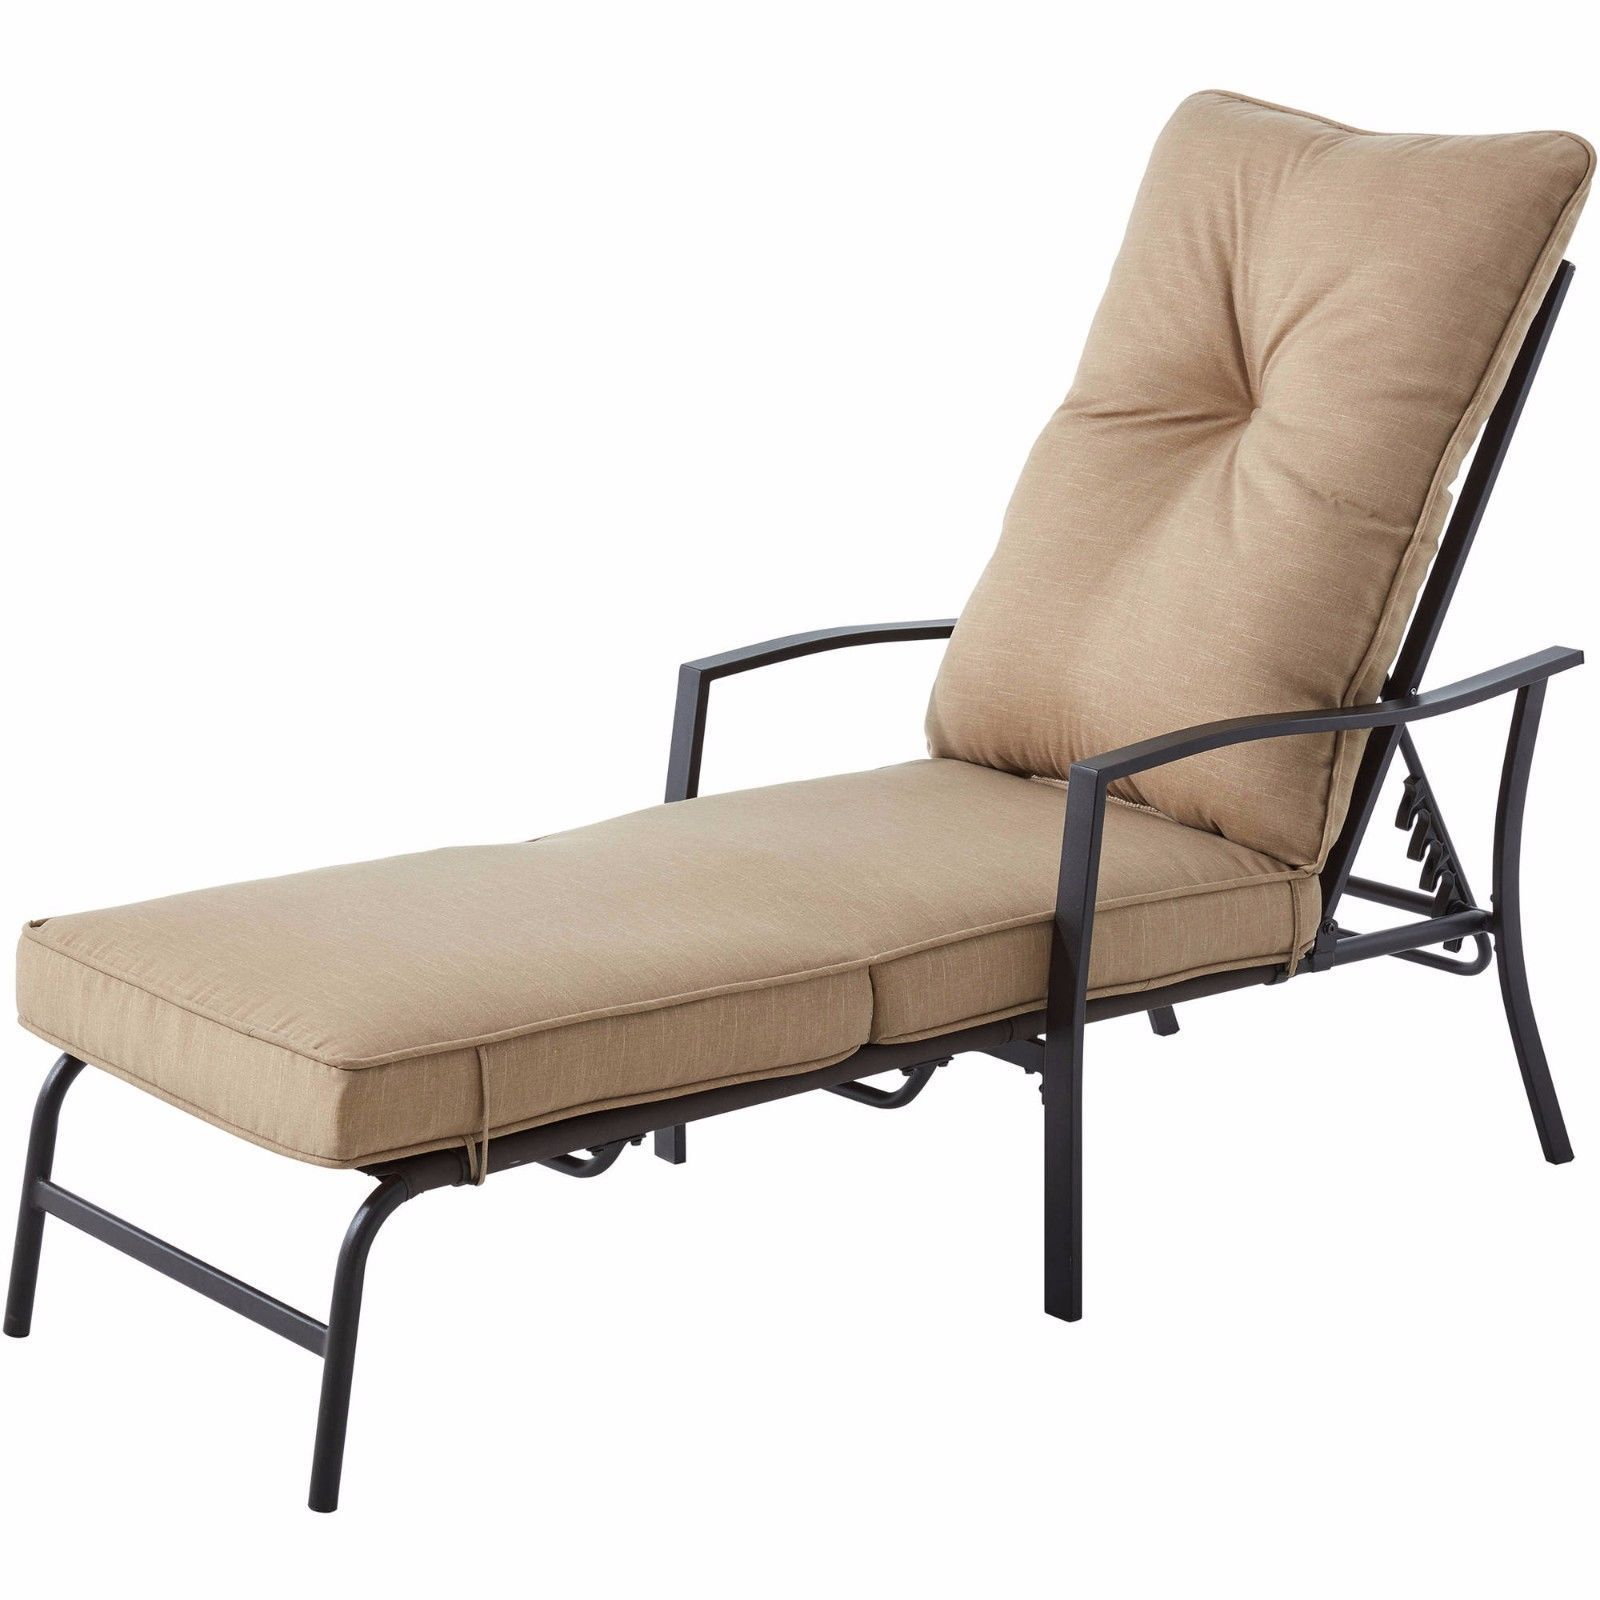 Explore Outdoor Chaise Lounge Chairs And More!